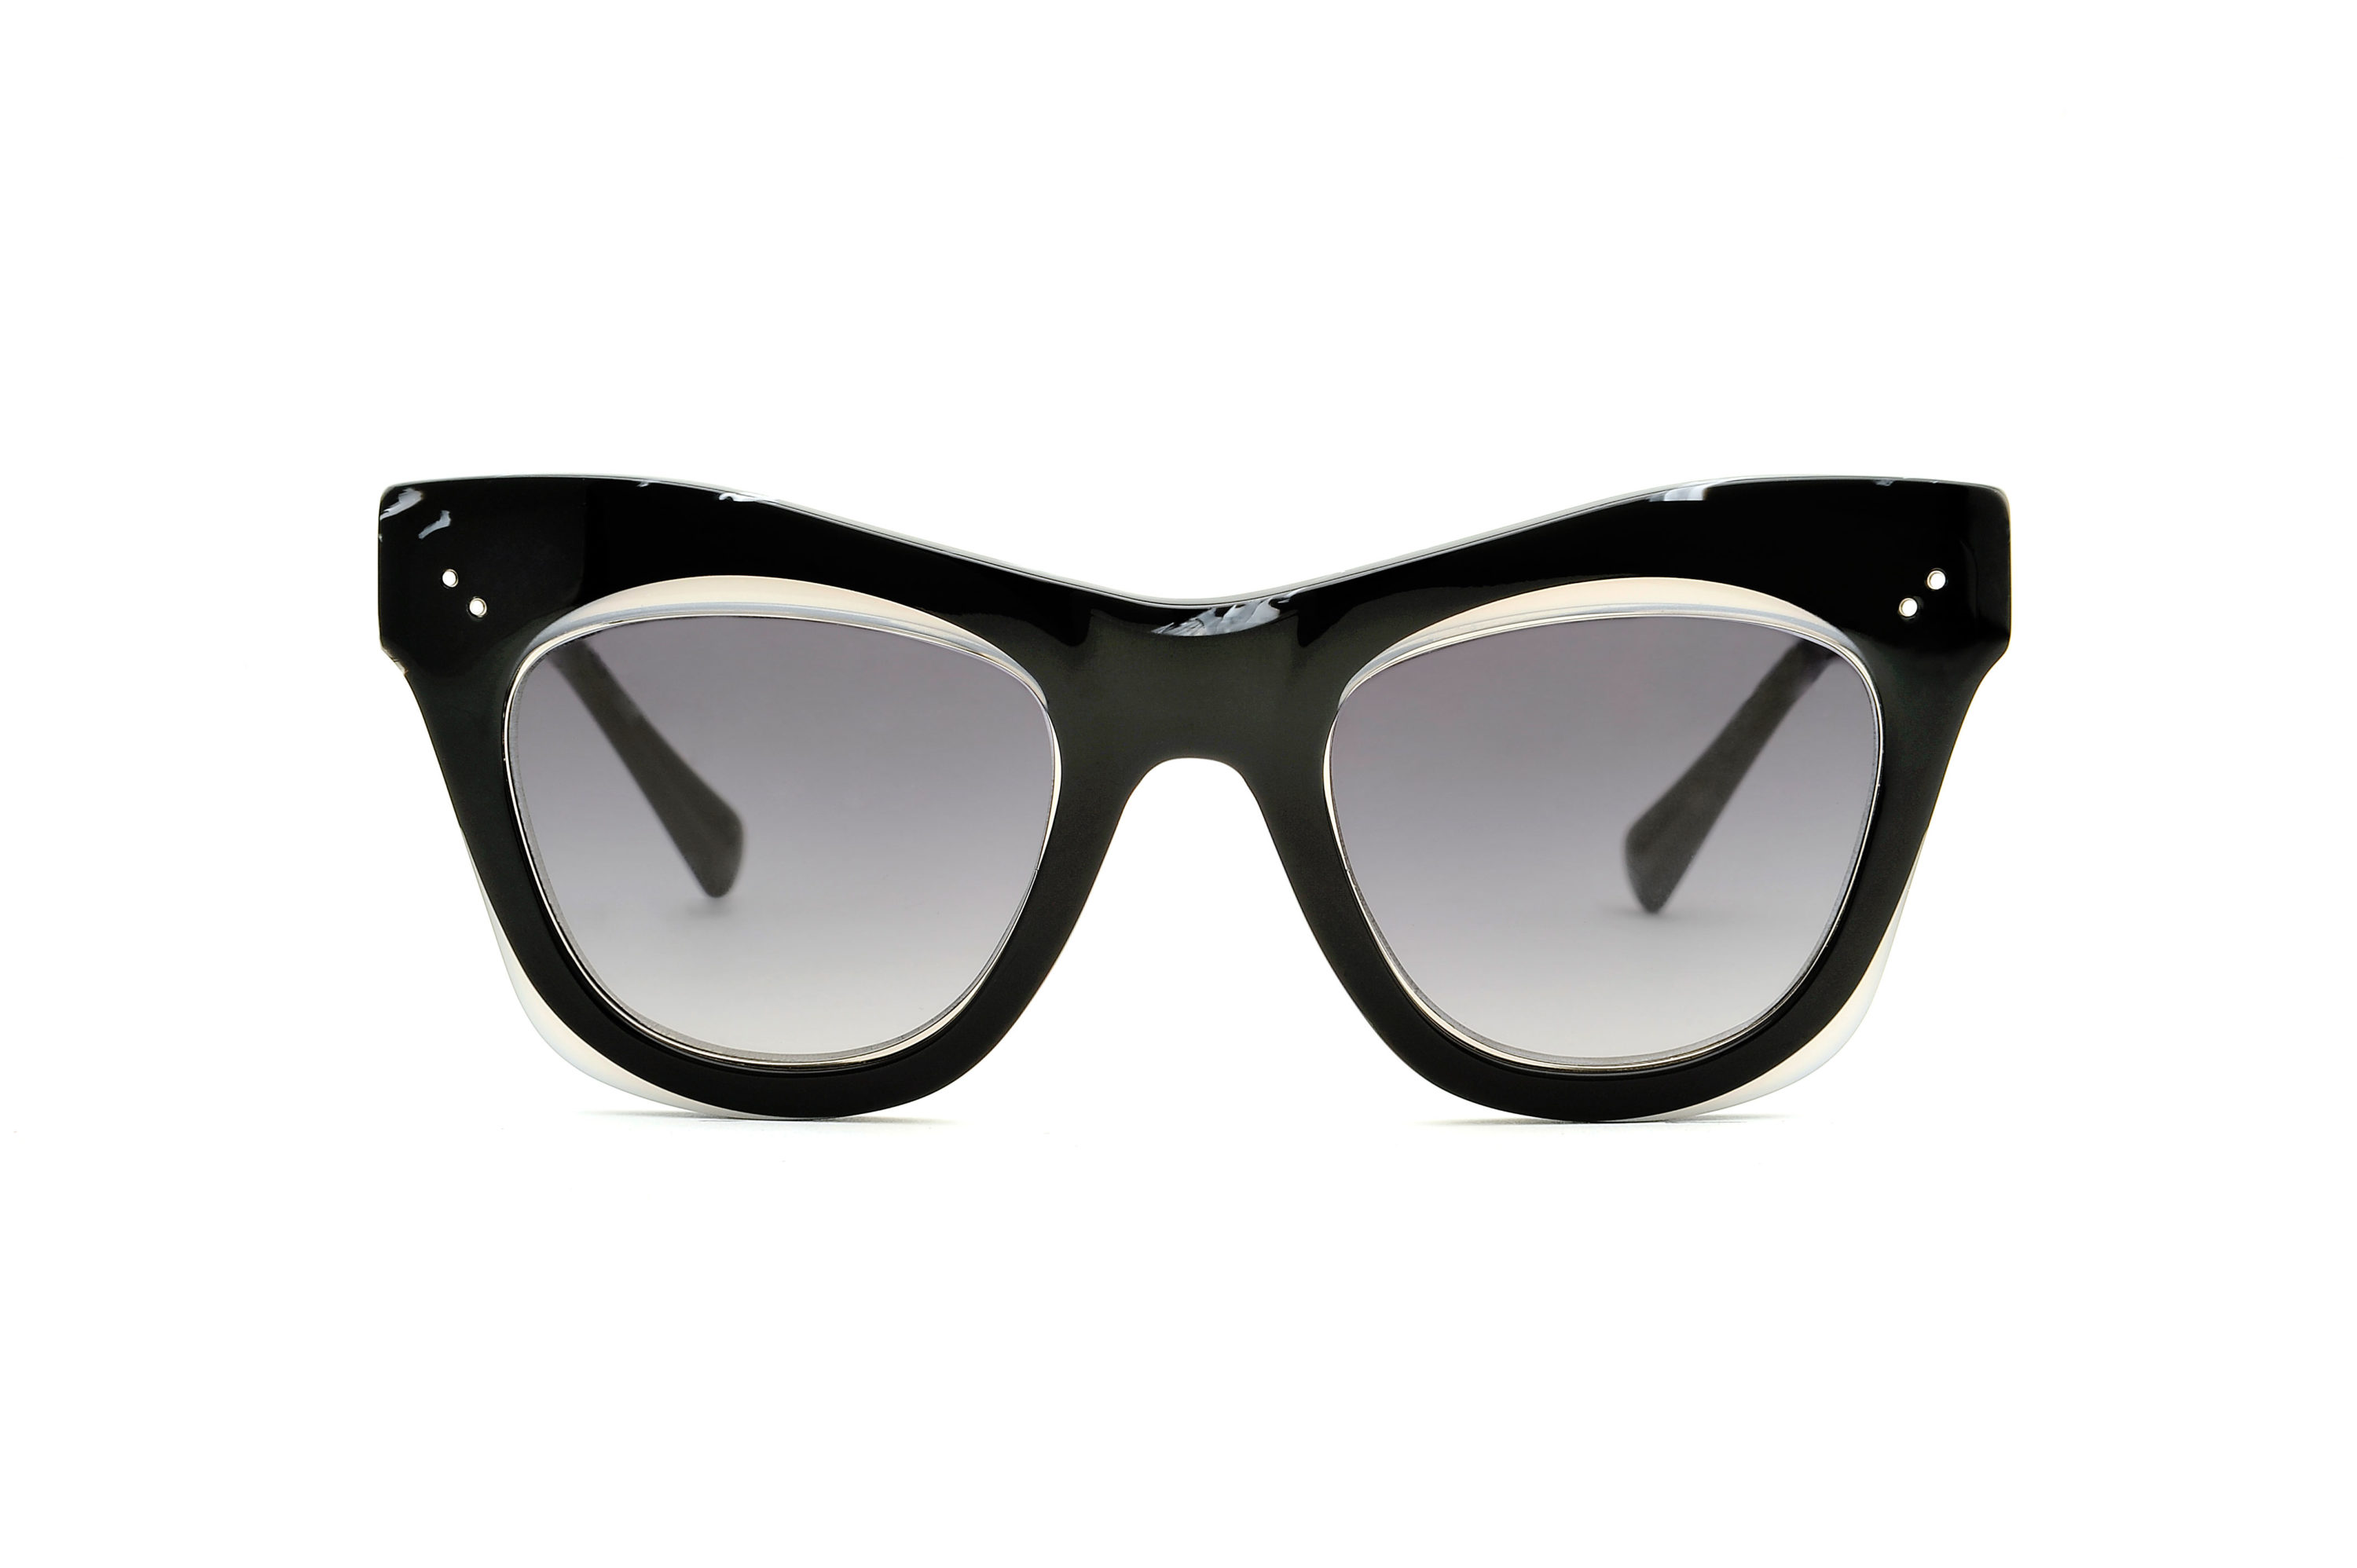 Onix acetate cat eye black sunglasses by GIGI Studios